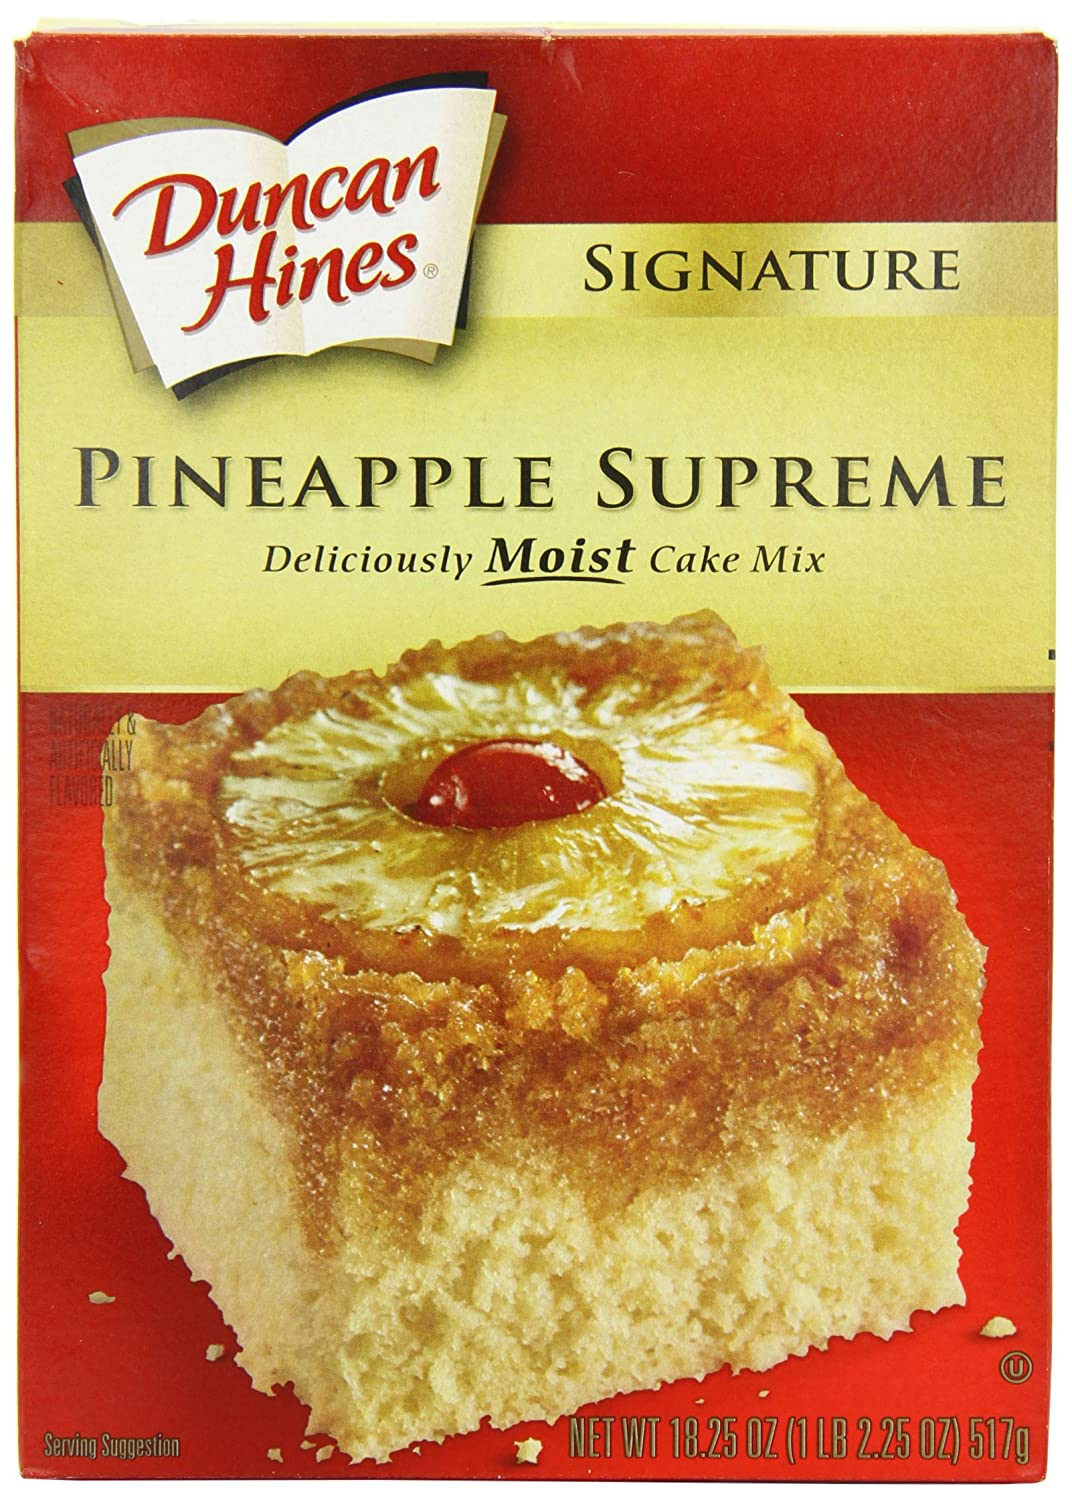 Duncan Hines Recipe For Upside Down Pineapple Cake